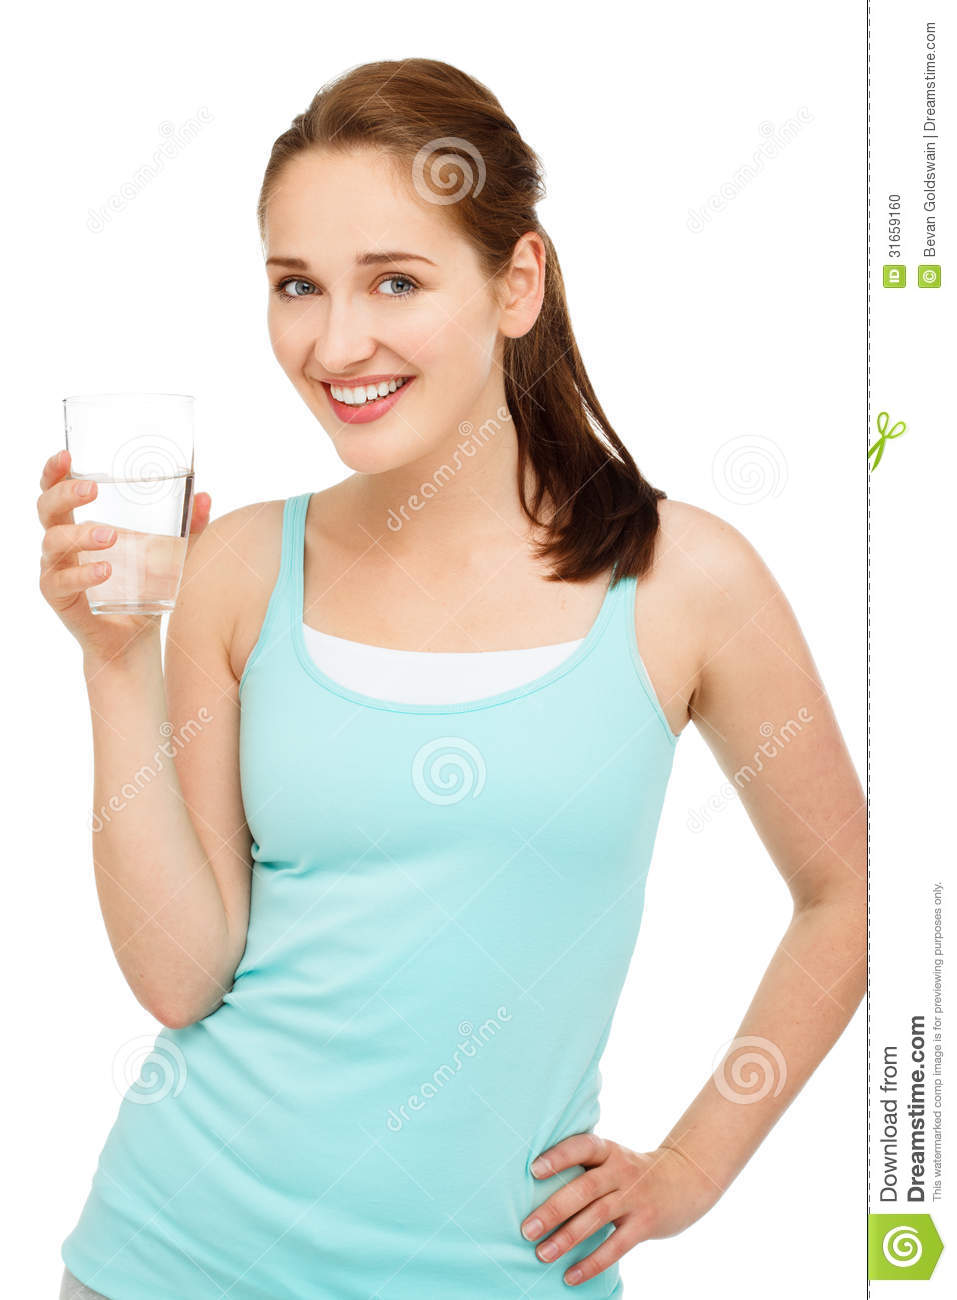 High key Portrait young caucasian woman drinking water isolat